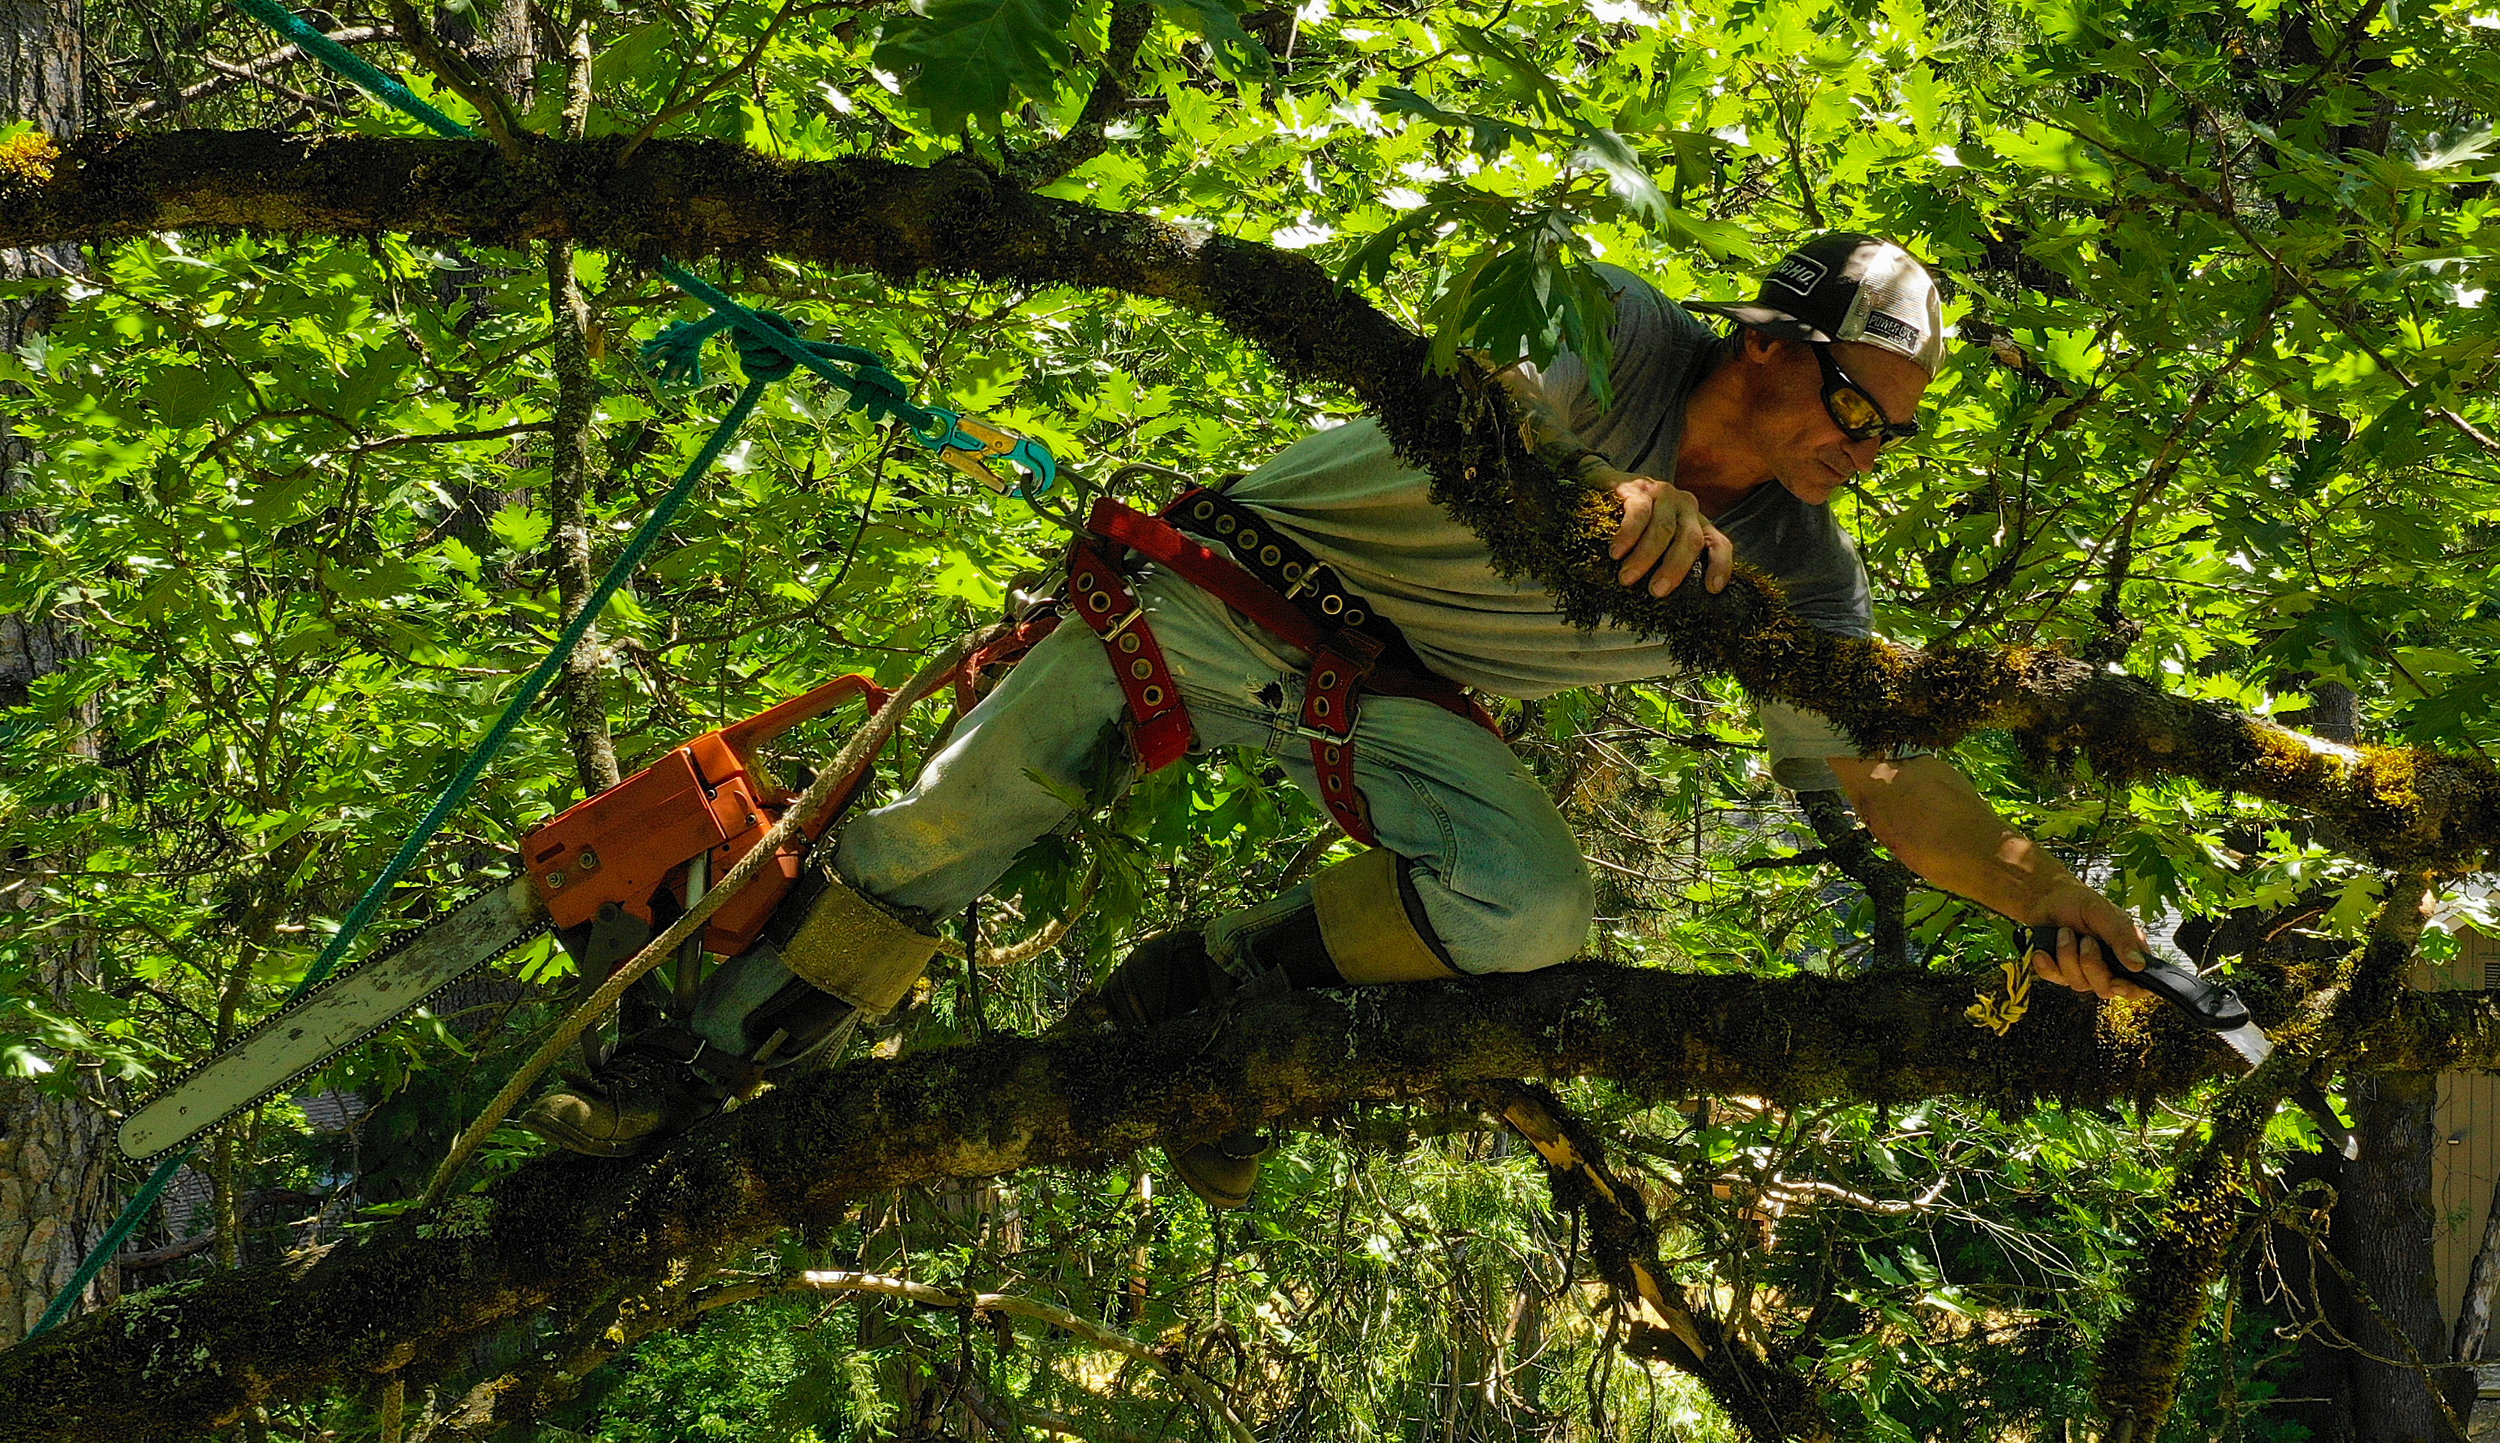 JESSE GARDNER - PROFESSIONAL TREE CLIMBER - A DRONE VIEW